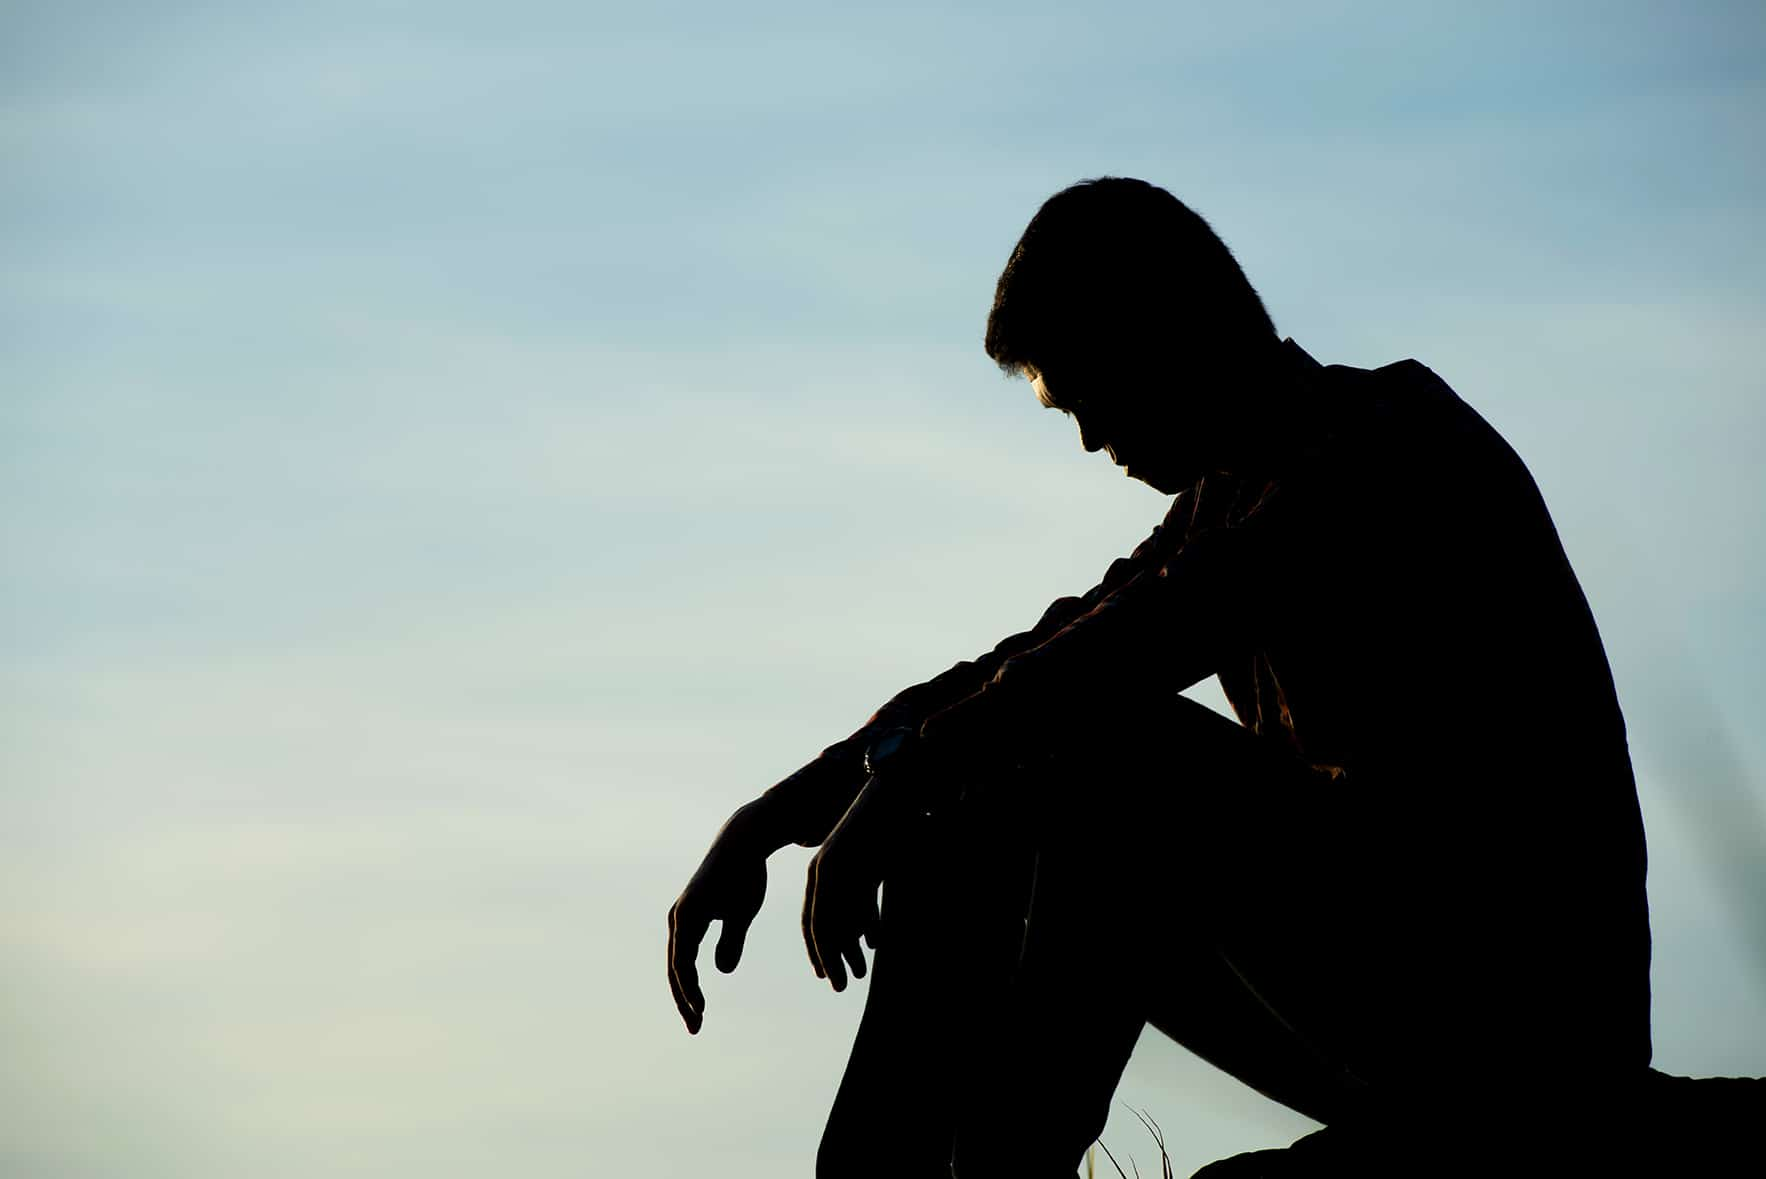 Silhouette of a young man in need of programs for troubled teens